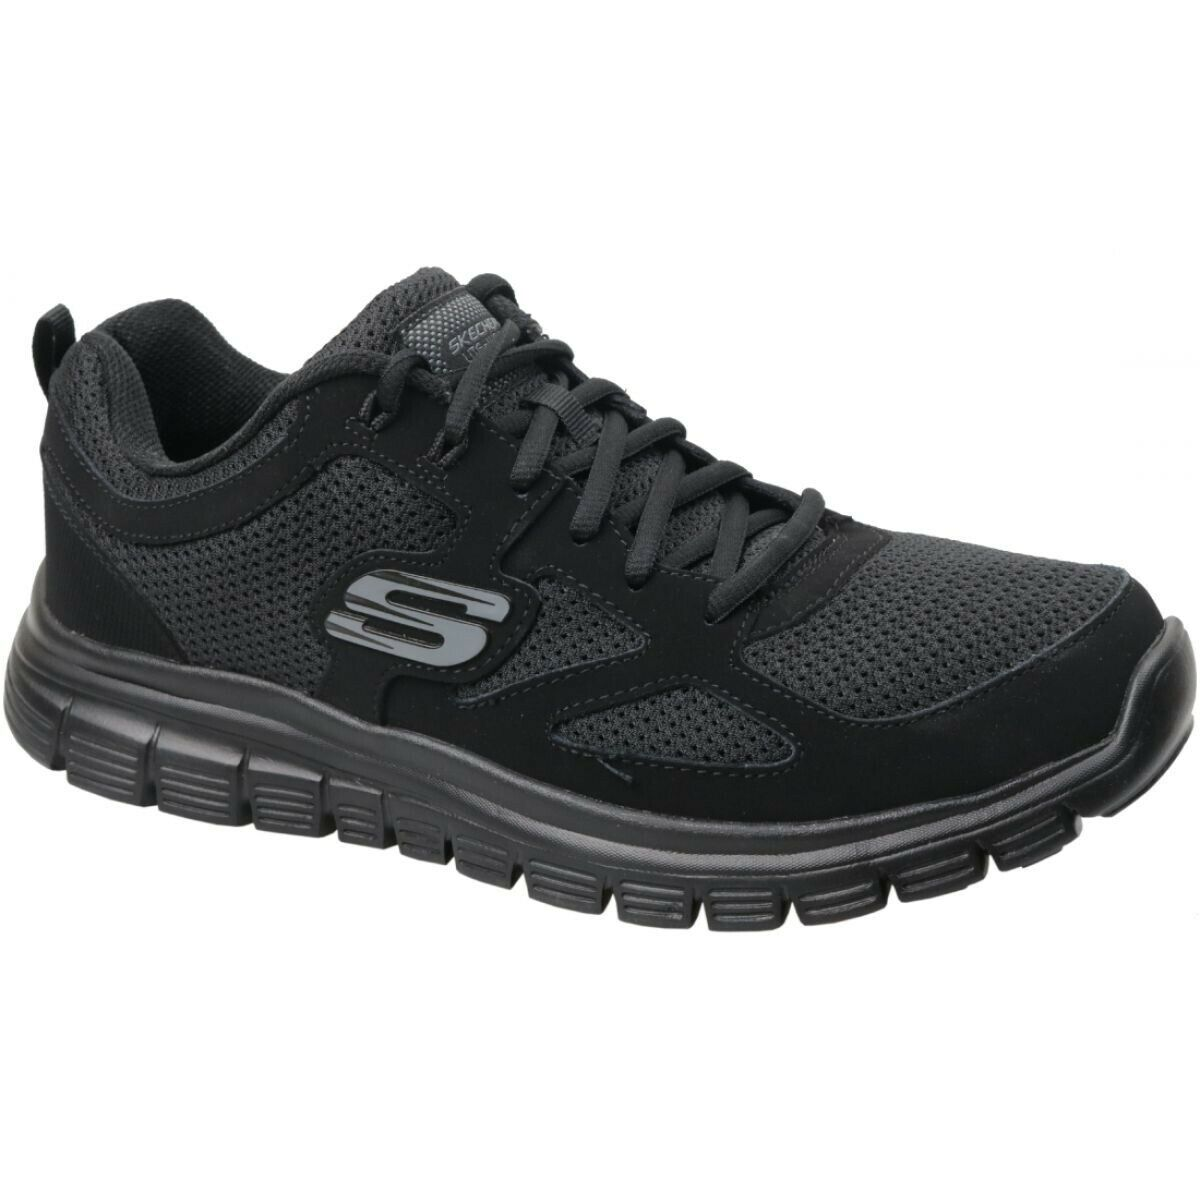 Skechers Men's Burns Agoura Trainers - Valley Sports UK